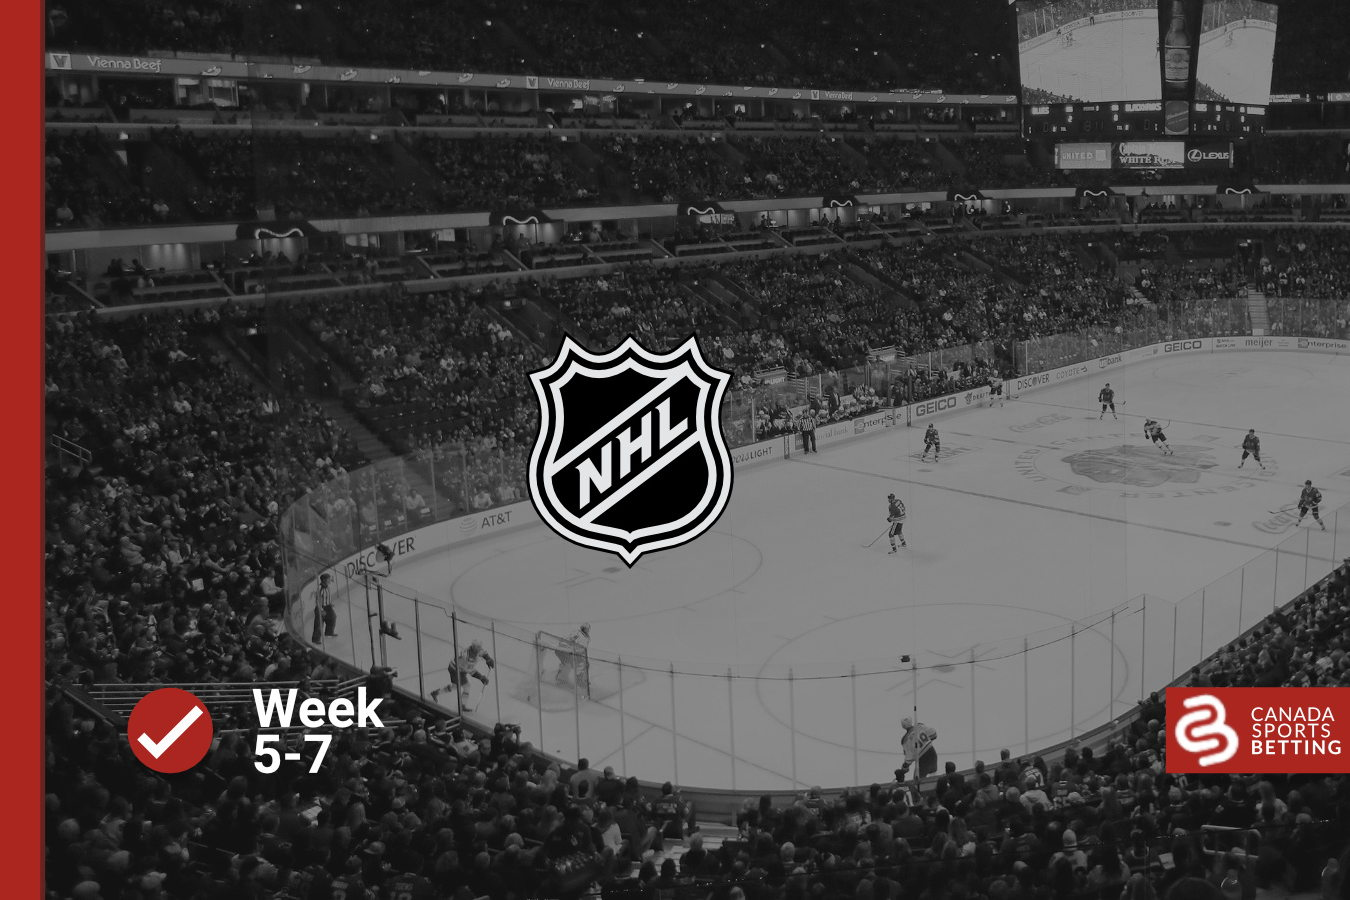 NHL Picks And Predictions: February Weekend 5-7